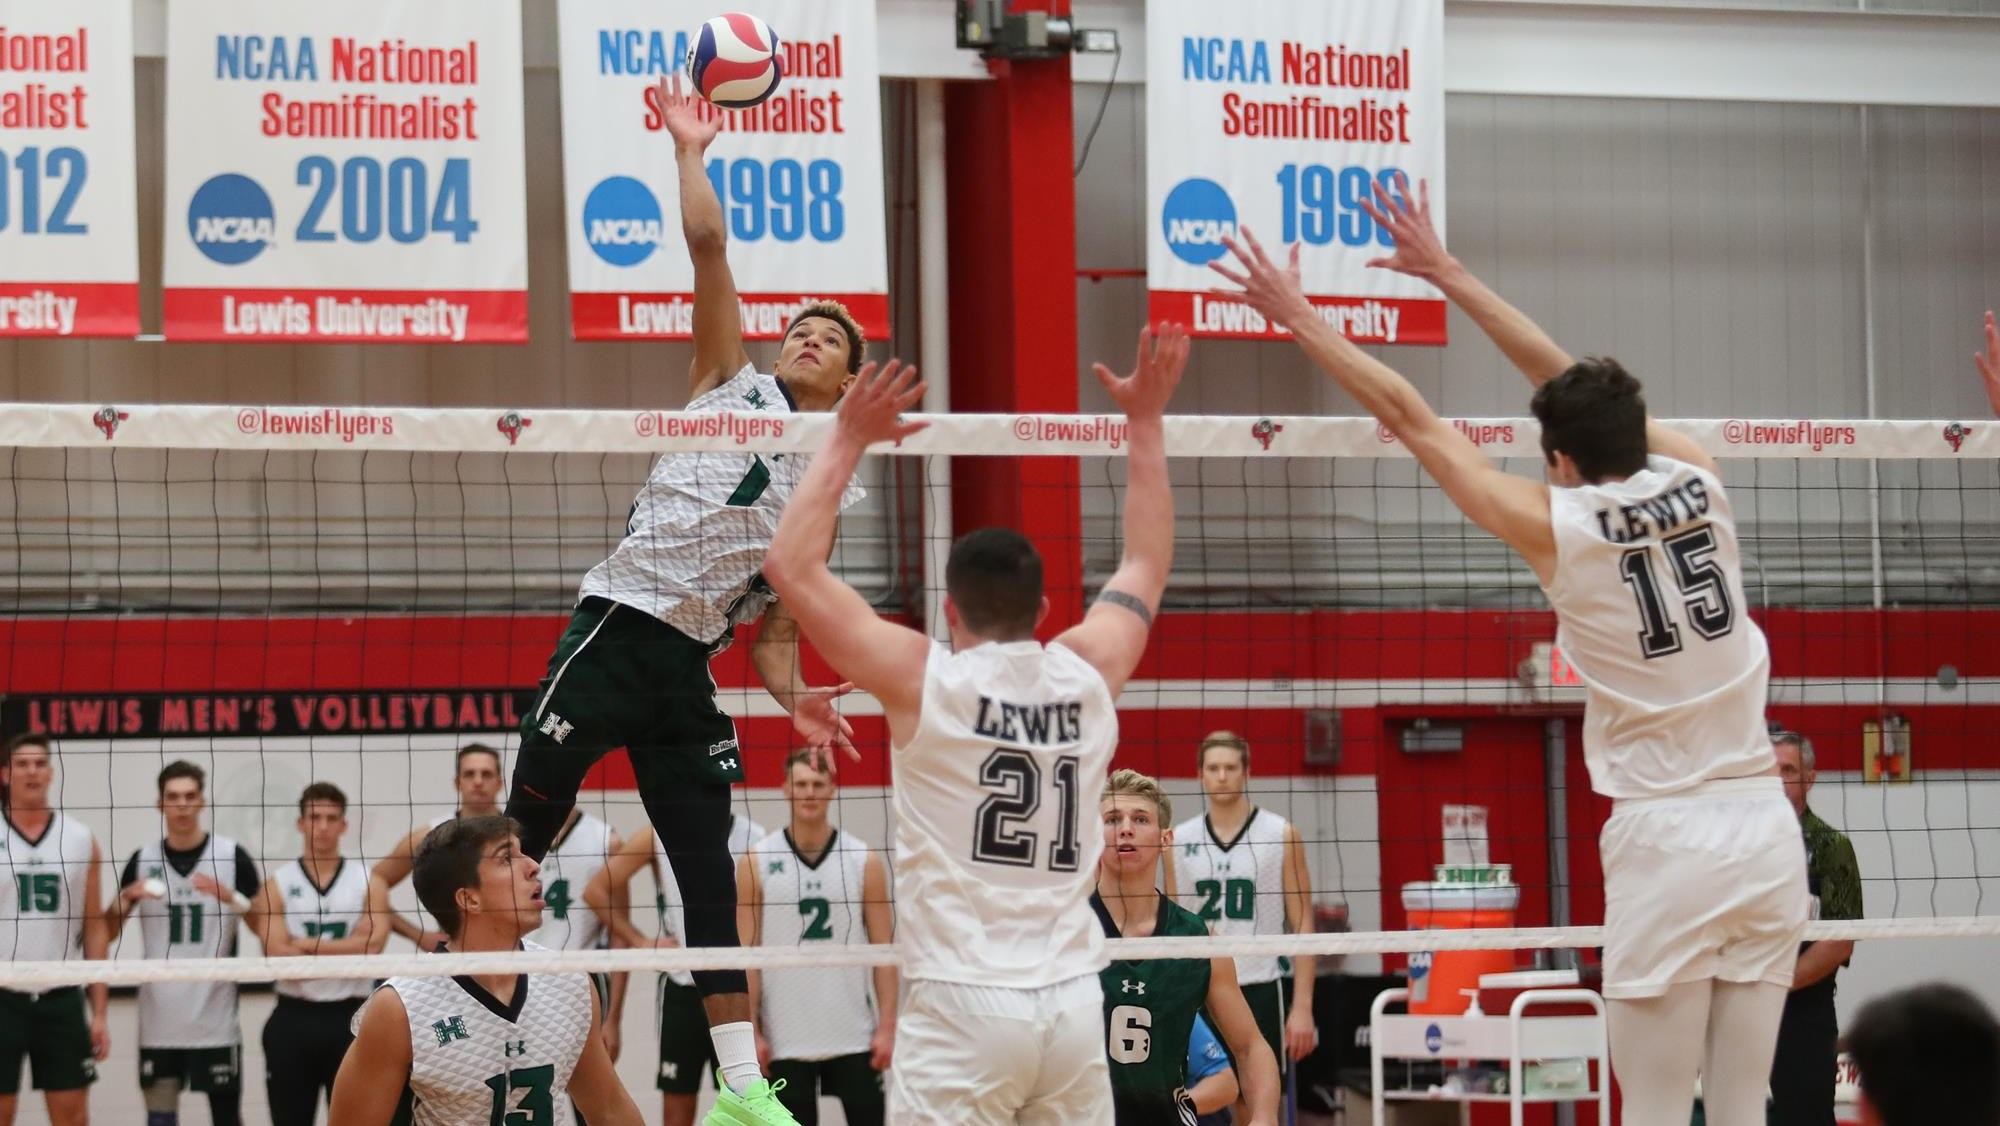 Chaz Galloway Men S Volleyball University Of Hawai I At Manoa Athletics